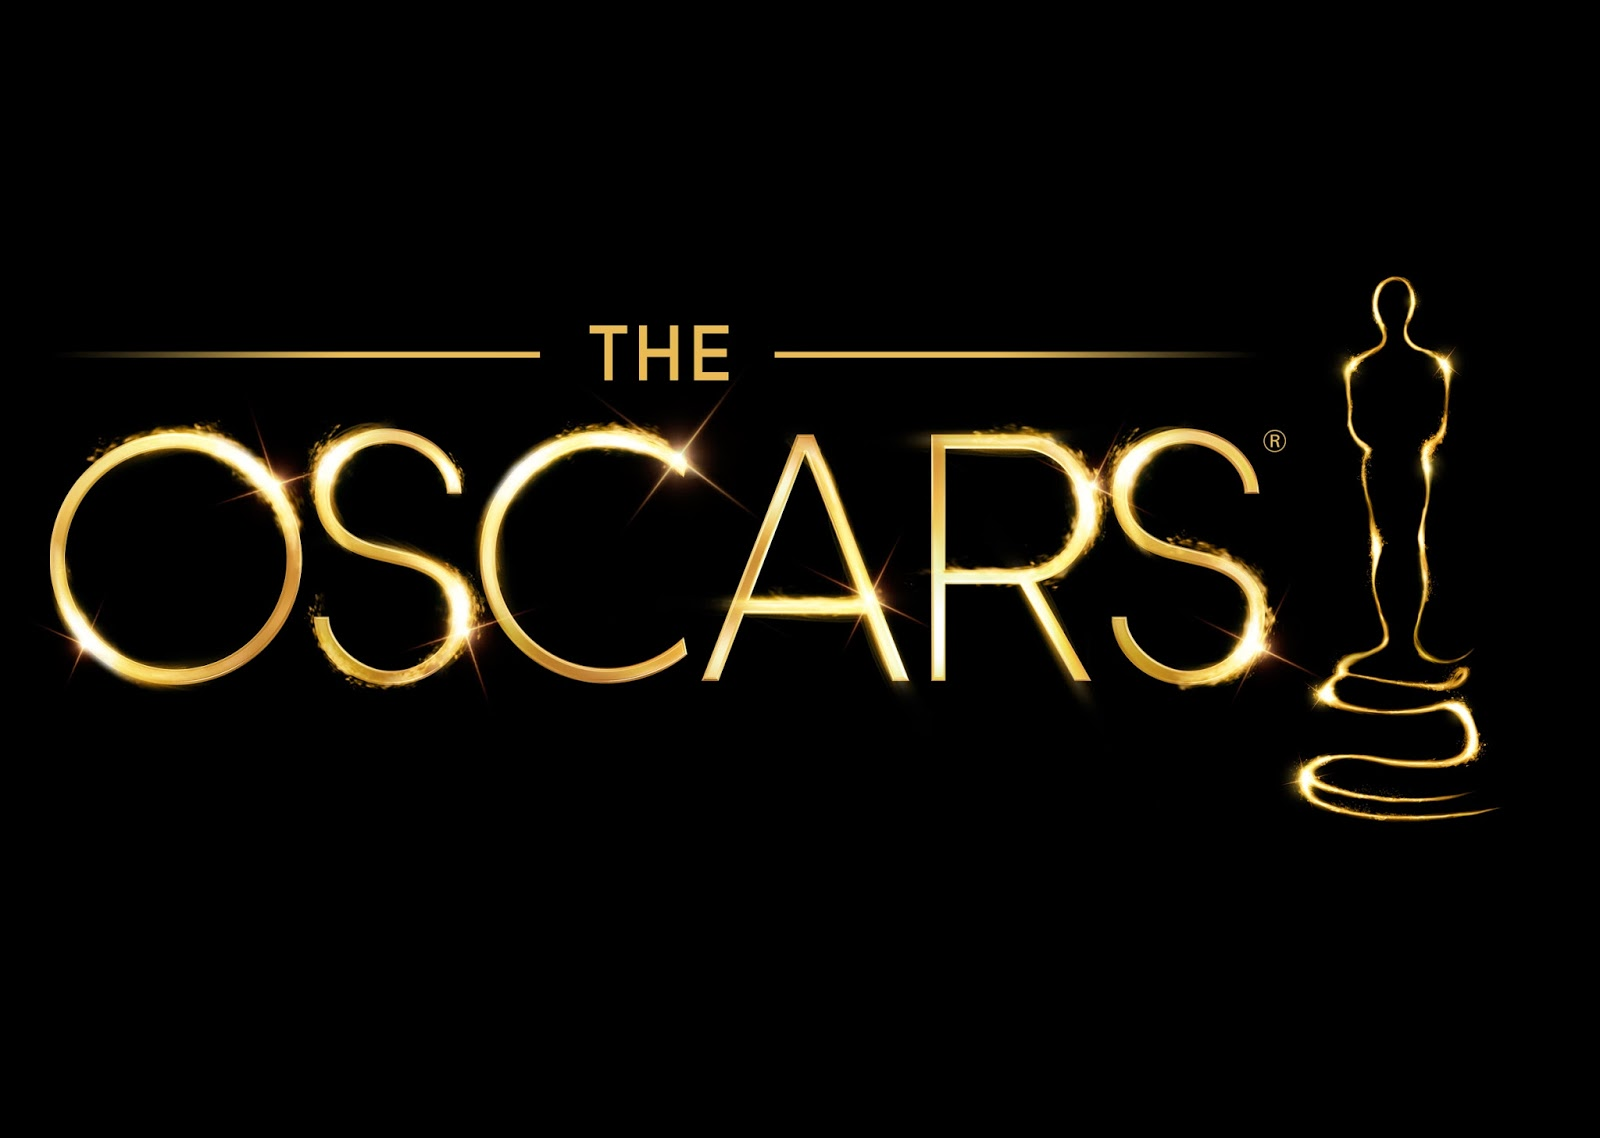 http://www.dealtrackersf.com/2014/02/28/watch-oscars-sf-oakland/